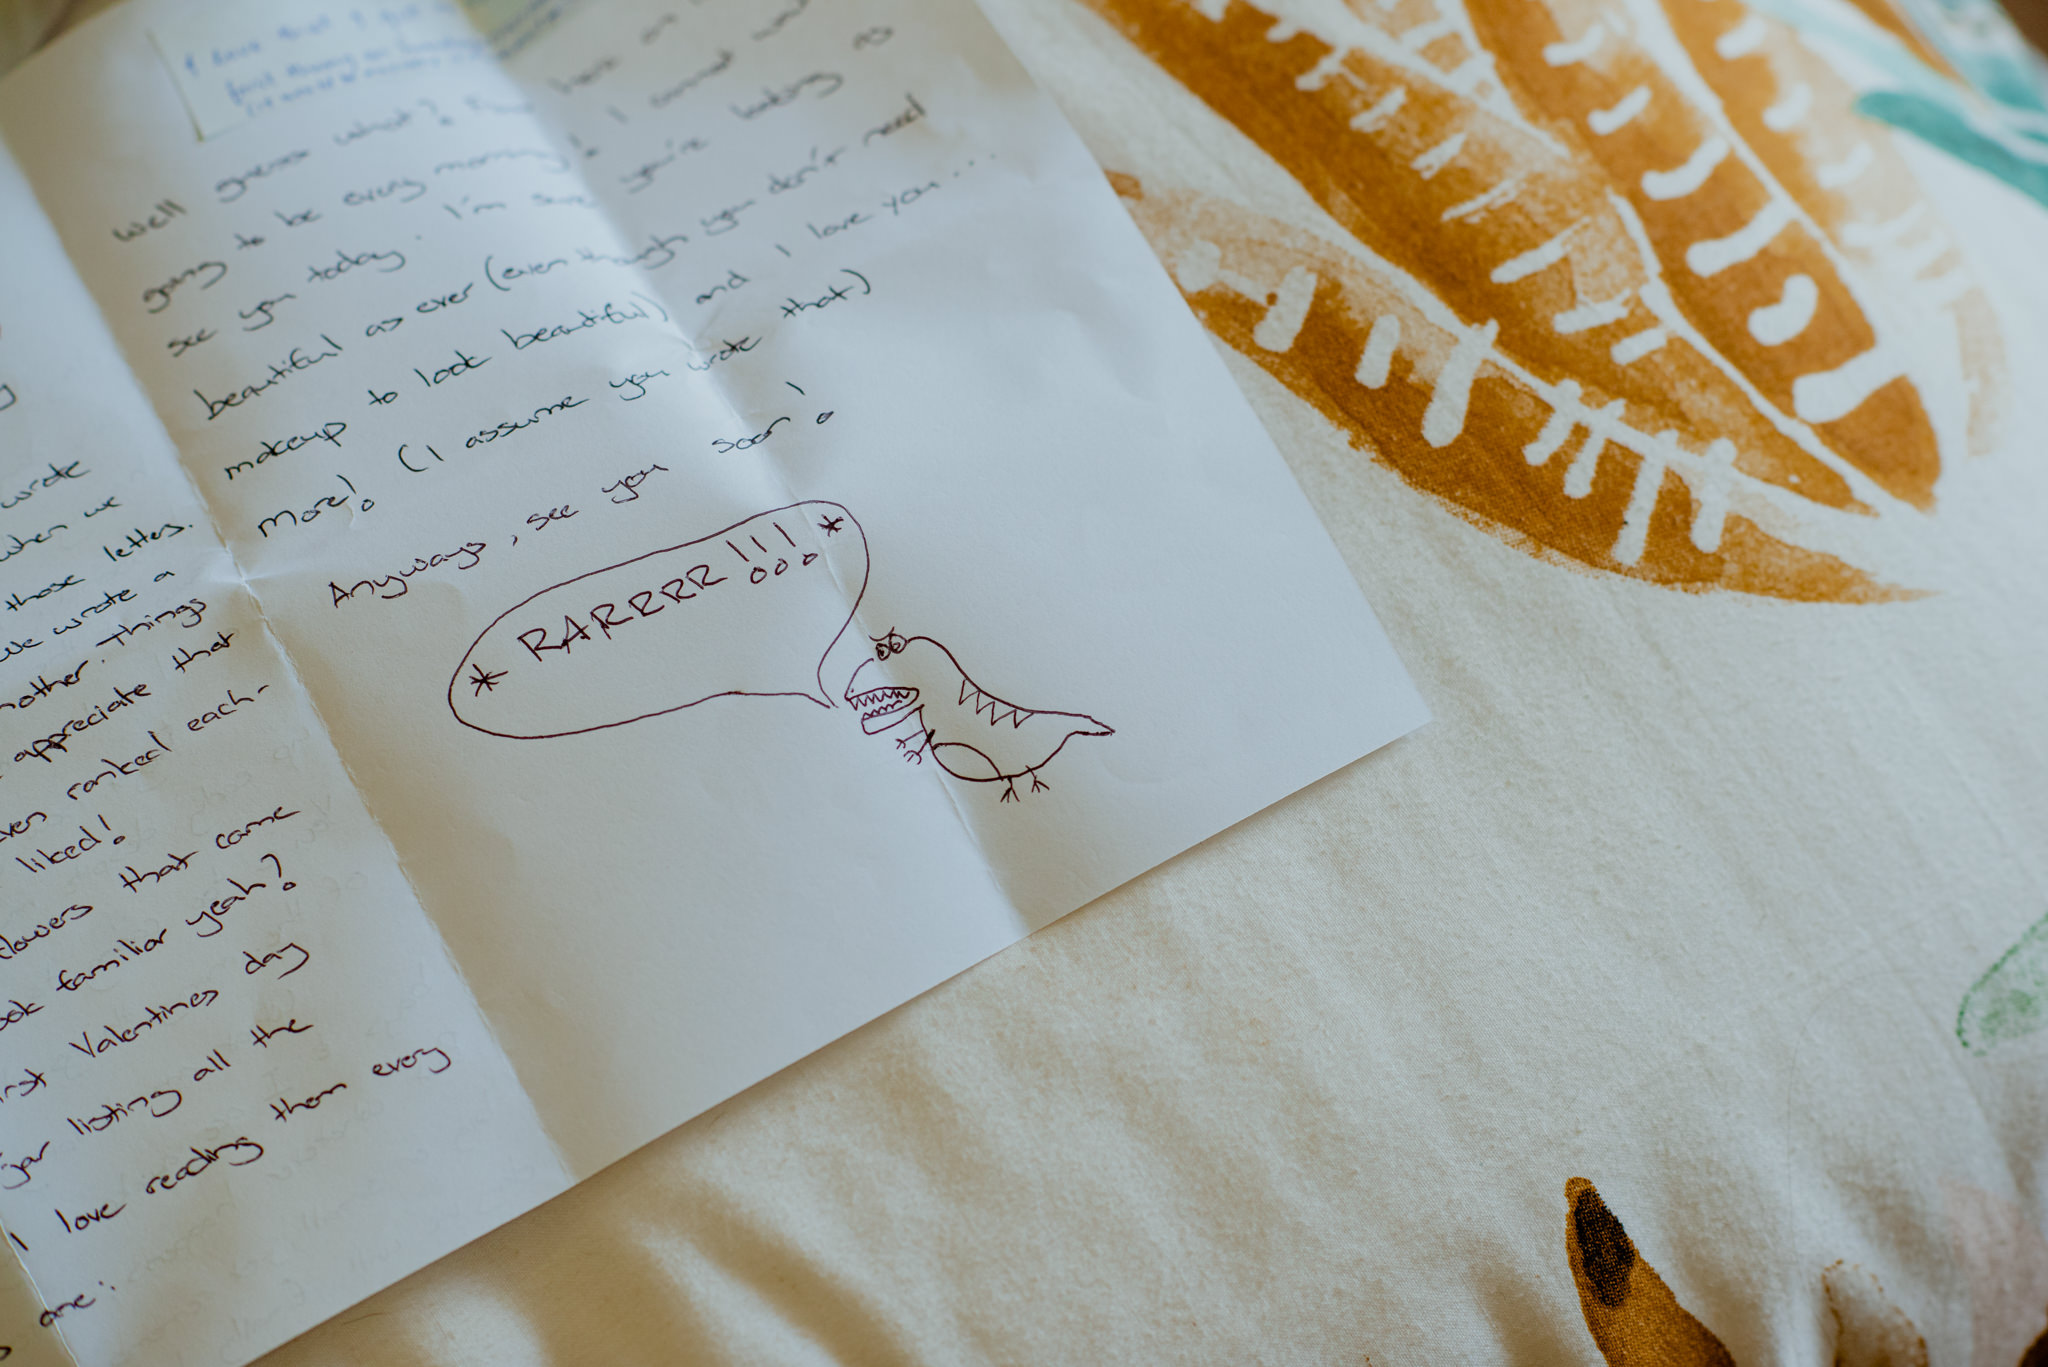 A comic drawing of a dinosaur on a hand-written note